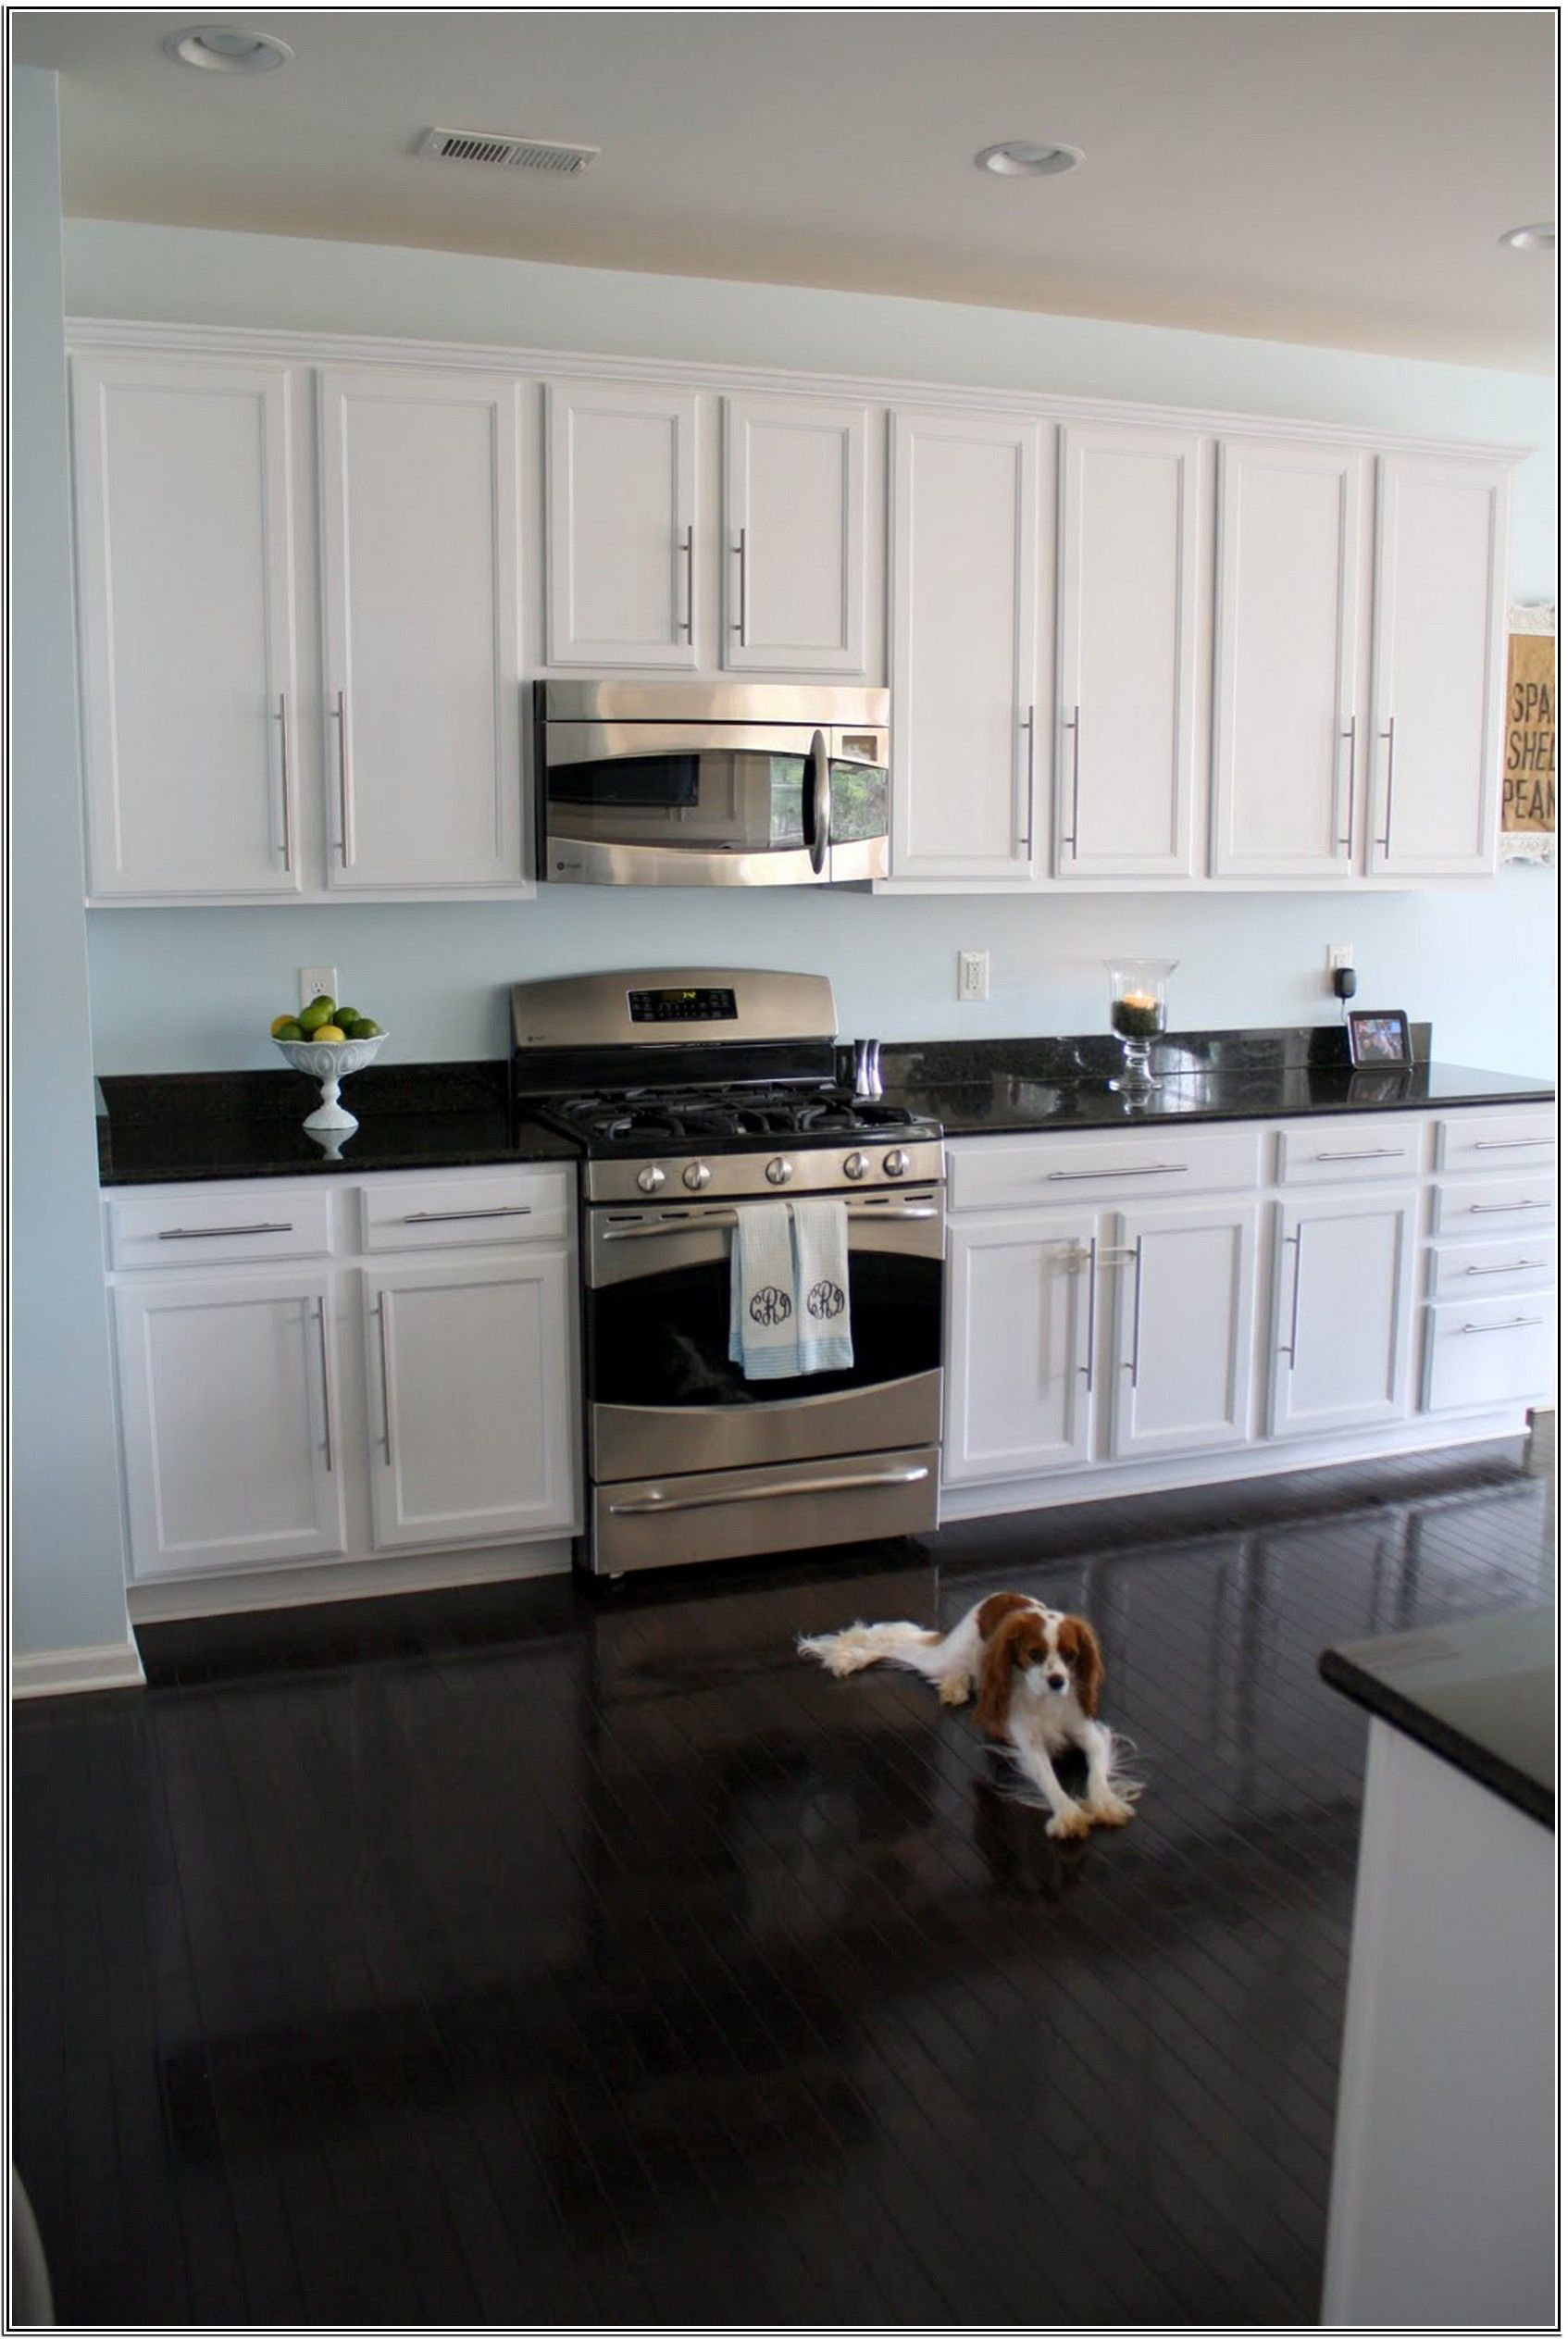 Make The Most Of Your Existing Kitchen Cabinets With A Clever Cabinet Makeover Replacing Ki White Modern Kitchen Black Kitchen Countertops Dark Kitchen Floors